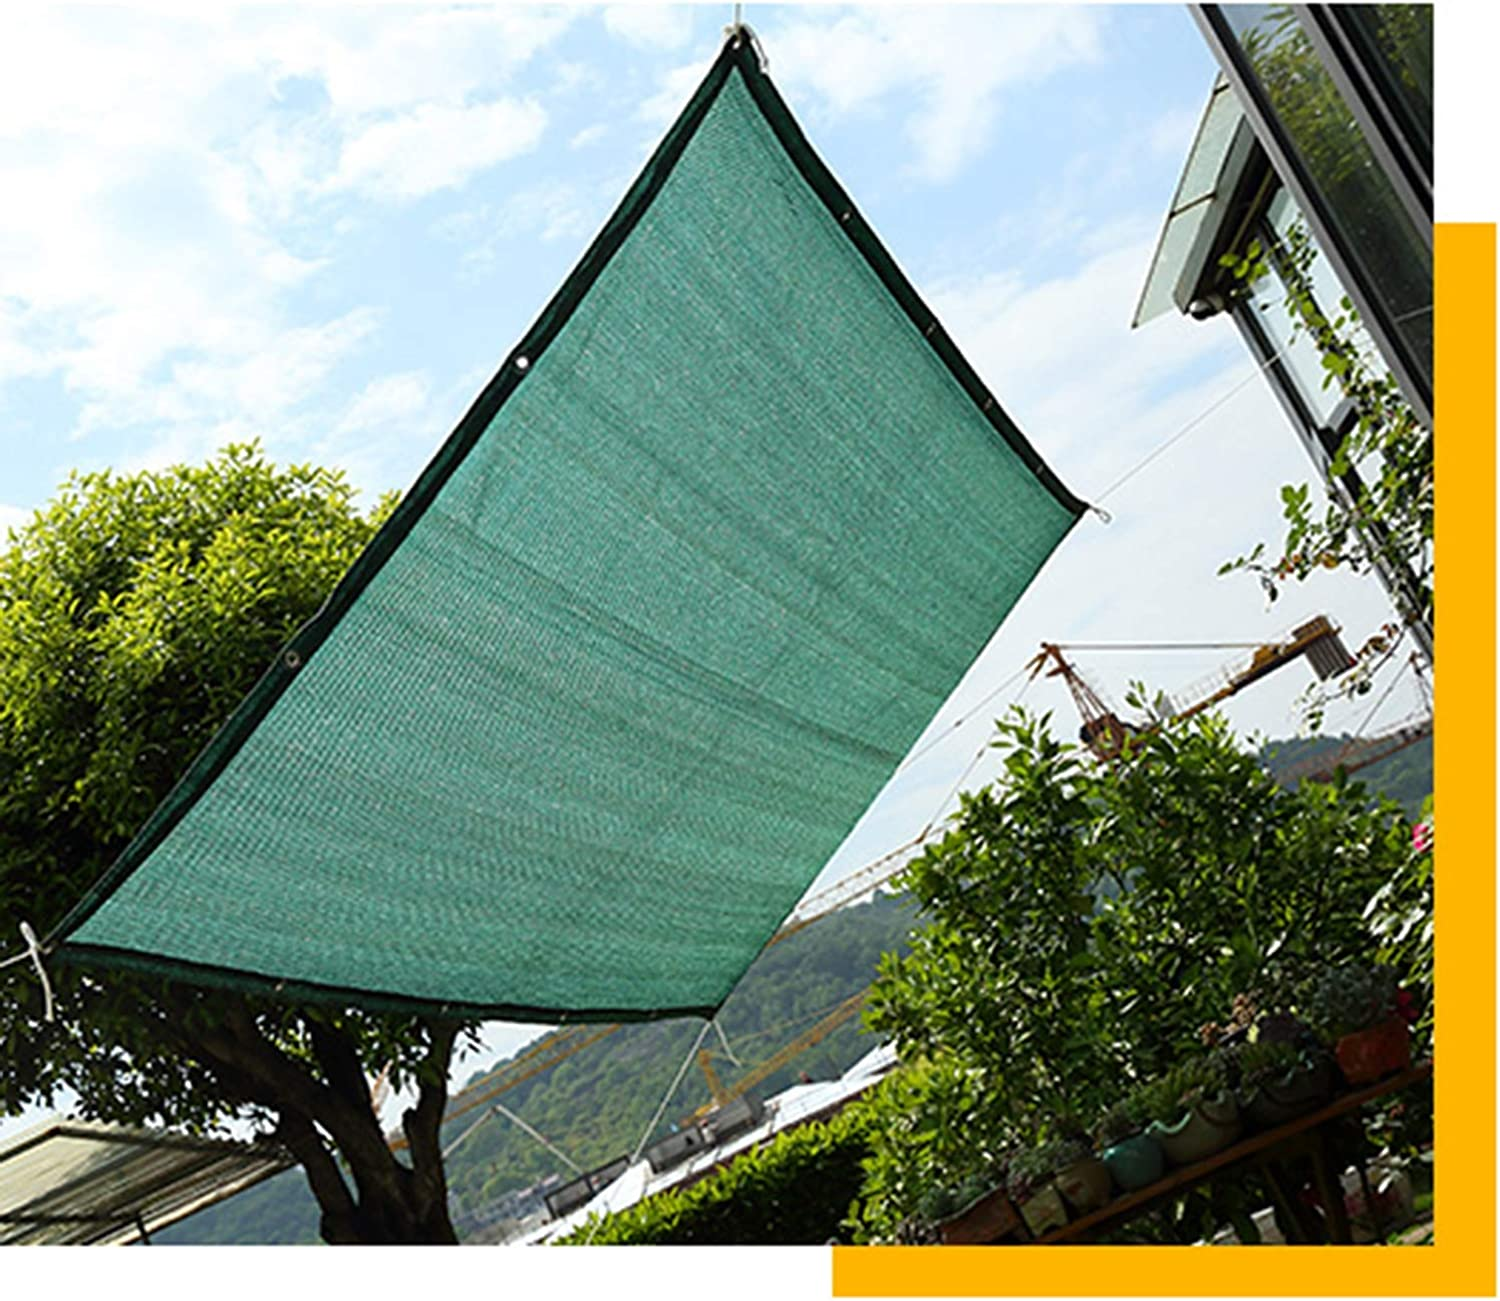 Home Sun Shade Cloth Fabric, Outdoor Sunblock UV Predection Shade Panel Net Cover, Taped Edge with Grommets SunBlock Mesh for Facility Activities Patio Backyard